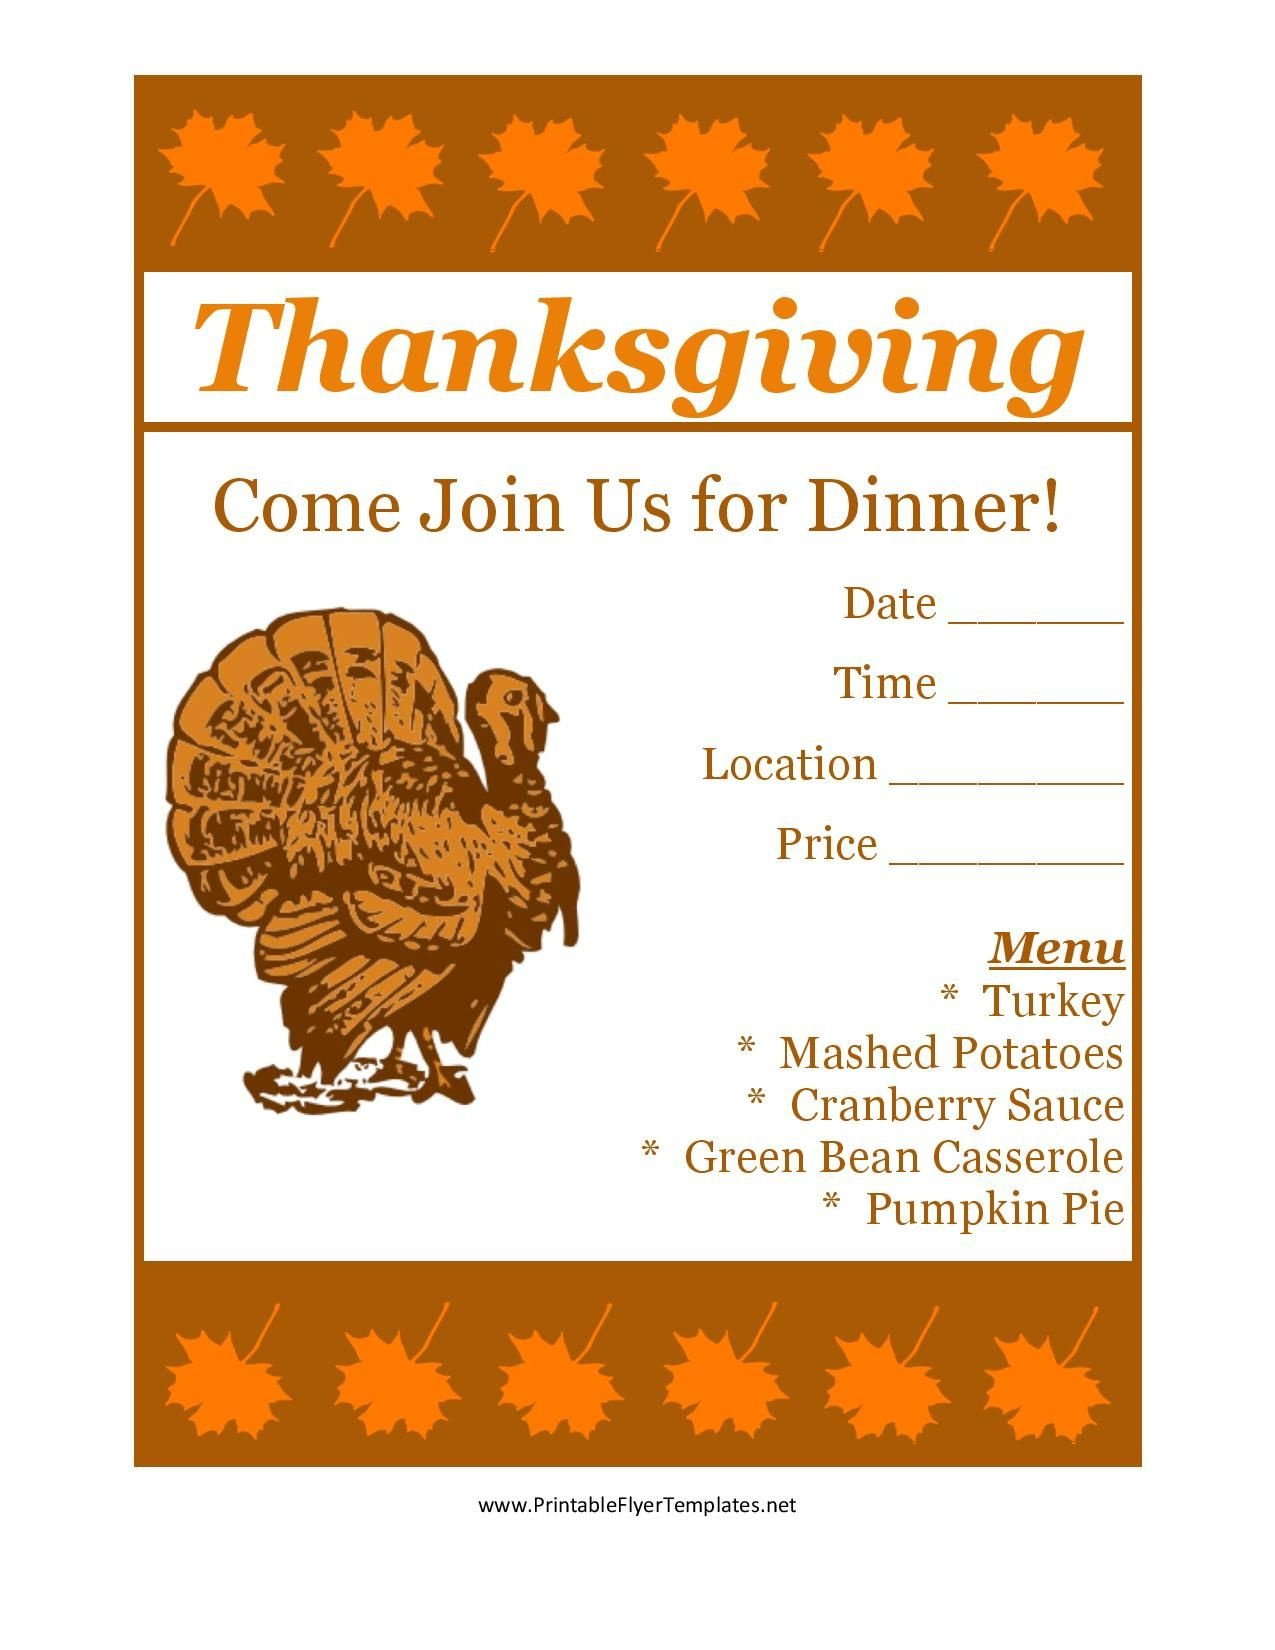 Free Printable Thanksgiving Flyer Invintation Template | Holiday's - Create Free Printable Flyer